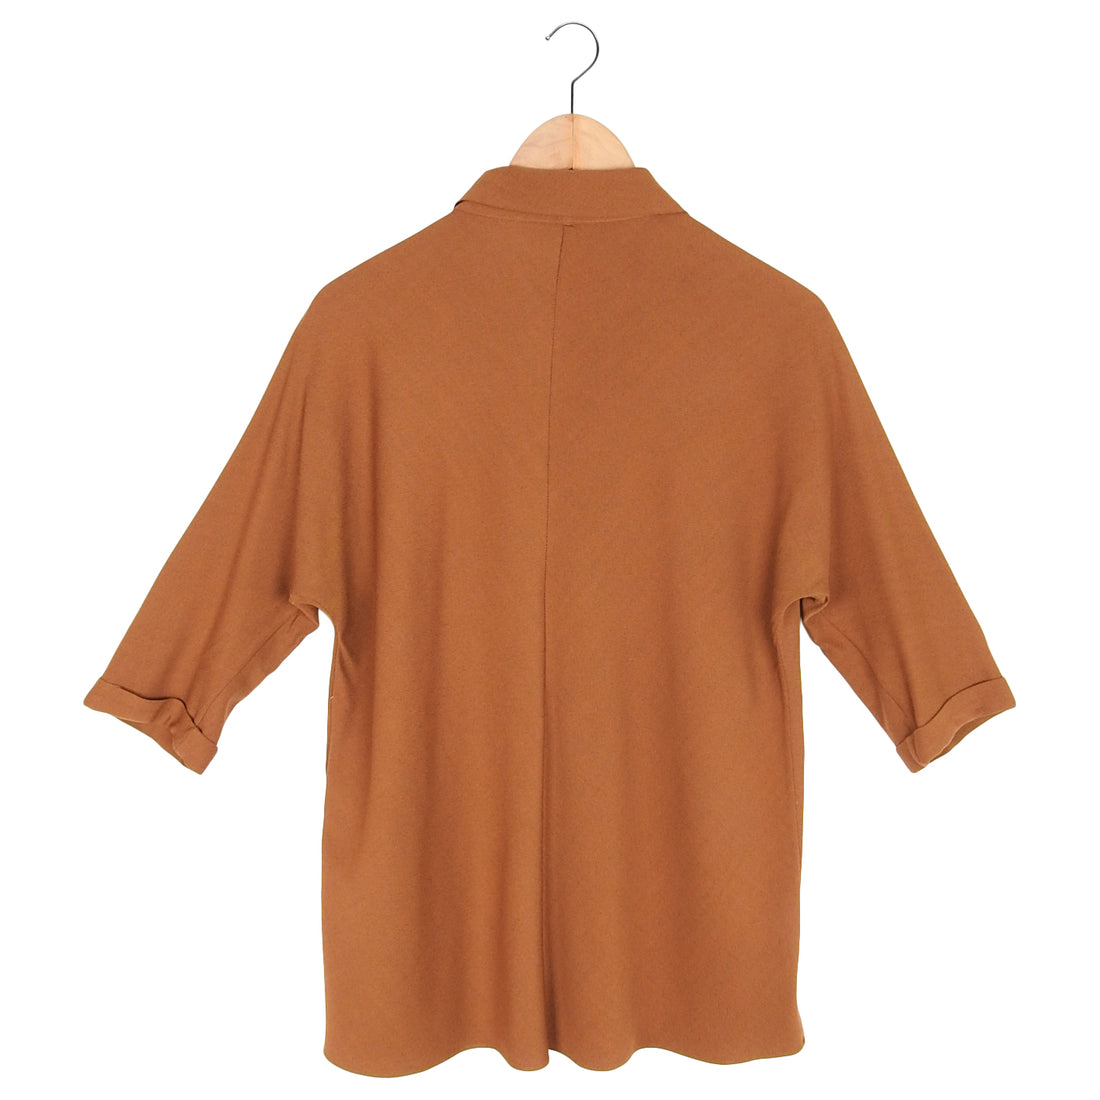 Details:  Closures:  Marked size:  Chest:  Waist:  Hip:  Shoulder seams:  Sleeve:  Back neck to hem:  Material:  Condition: